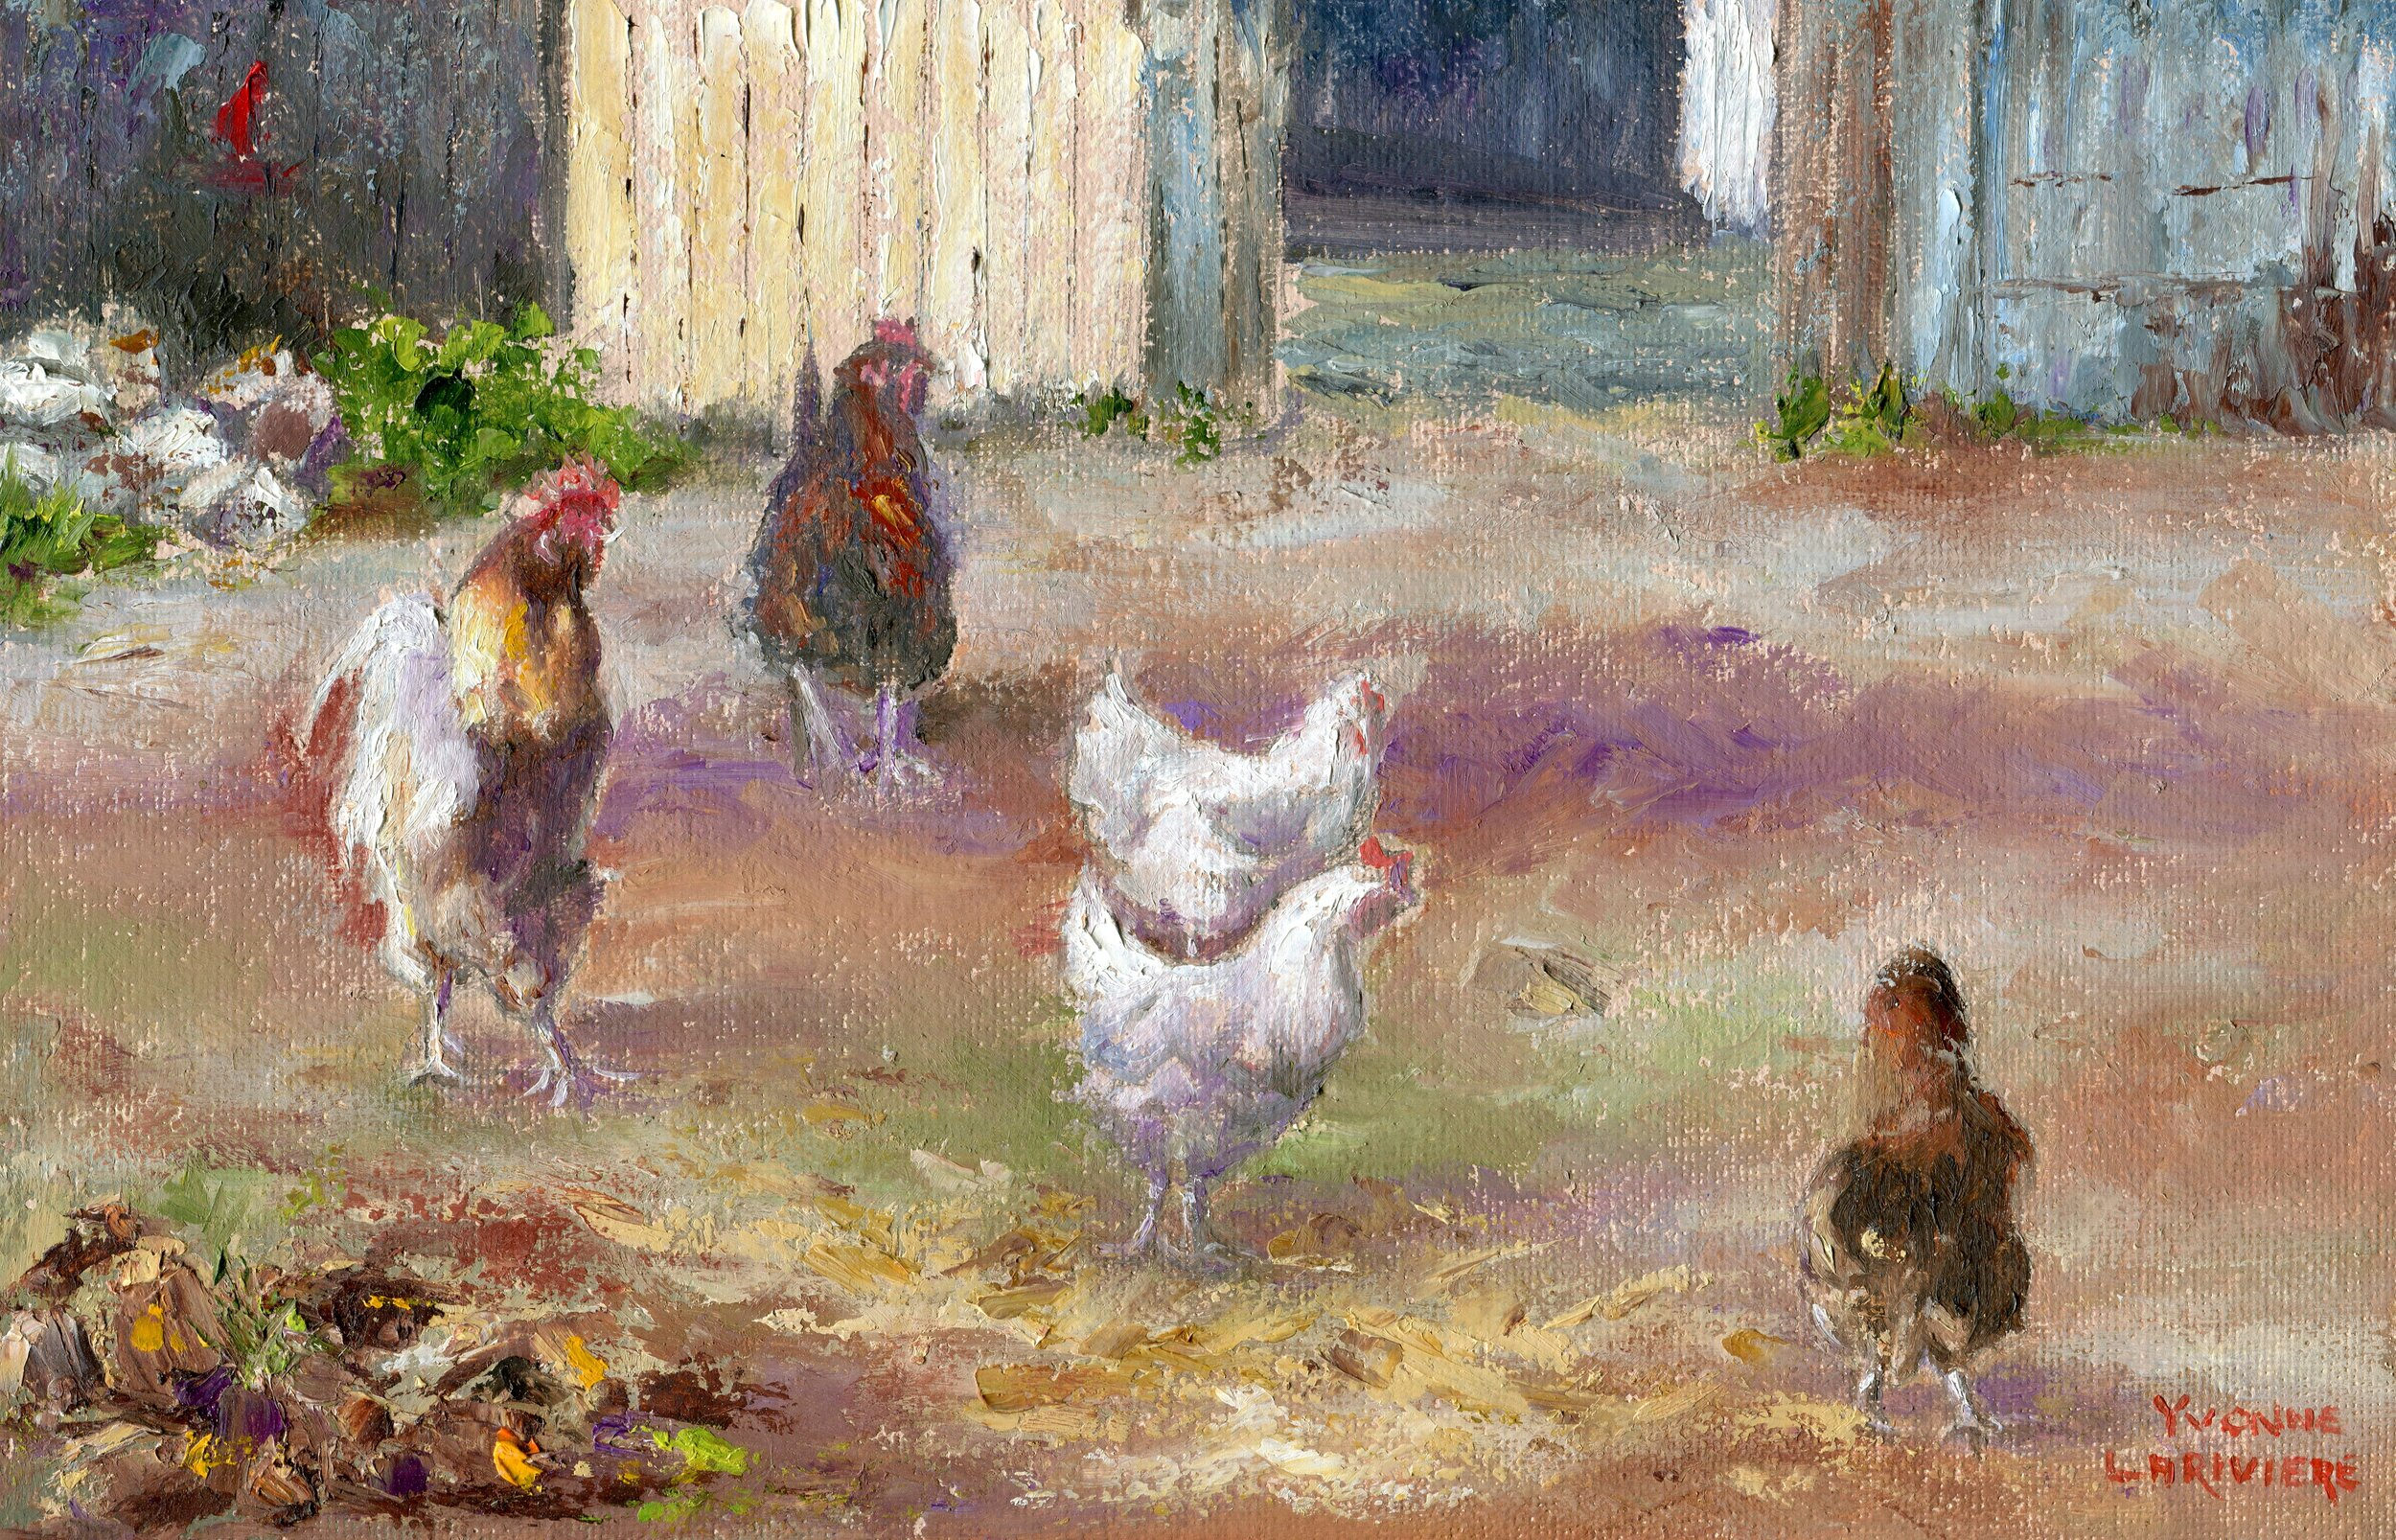 49a  Yvonne Larievere  Freedom  oil on canvas board